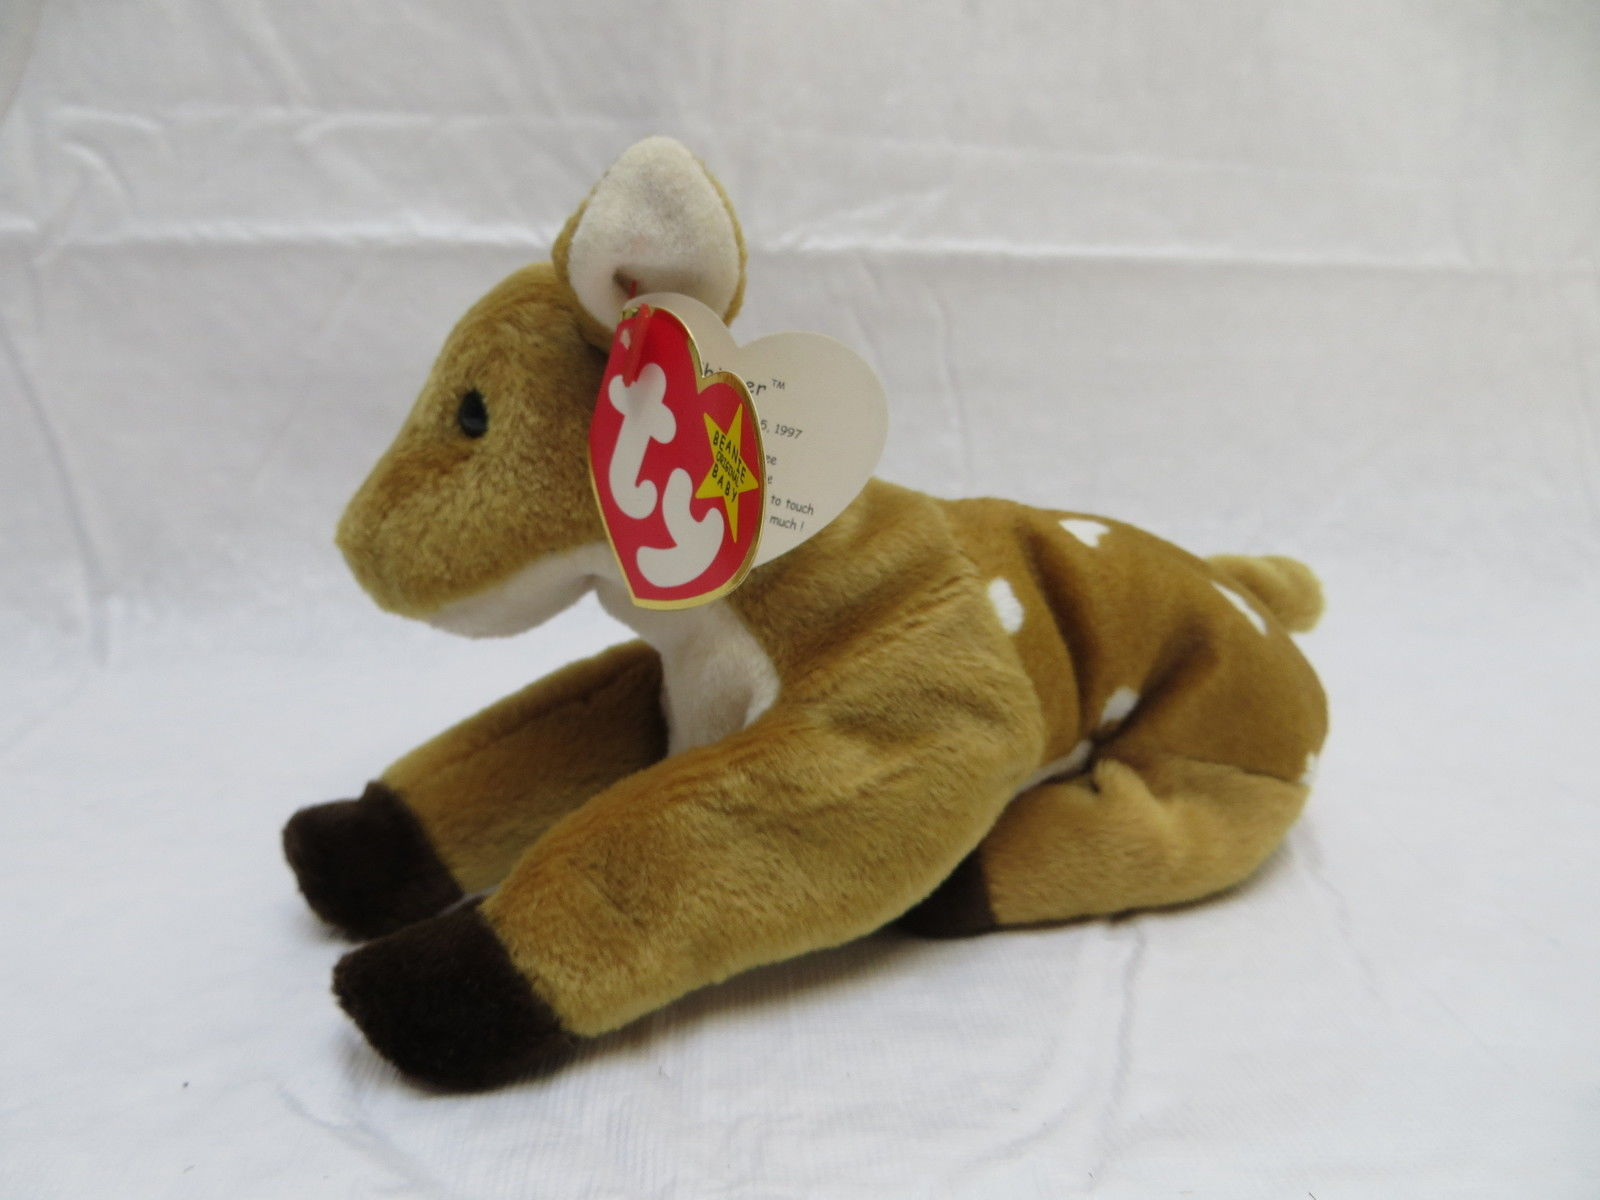 1a2c5d46bdb TY Retired Beanie Baby Whisper the Spotted and 30 similar items. S l1600